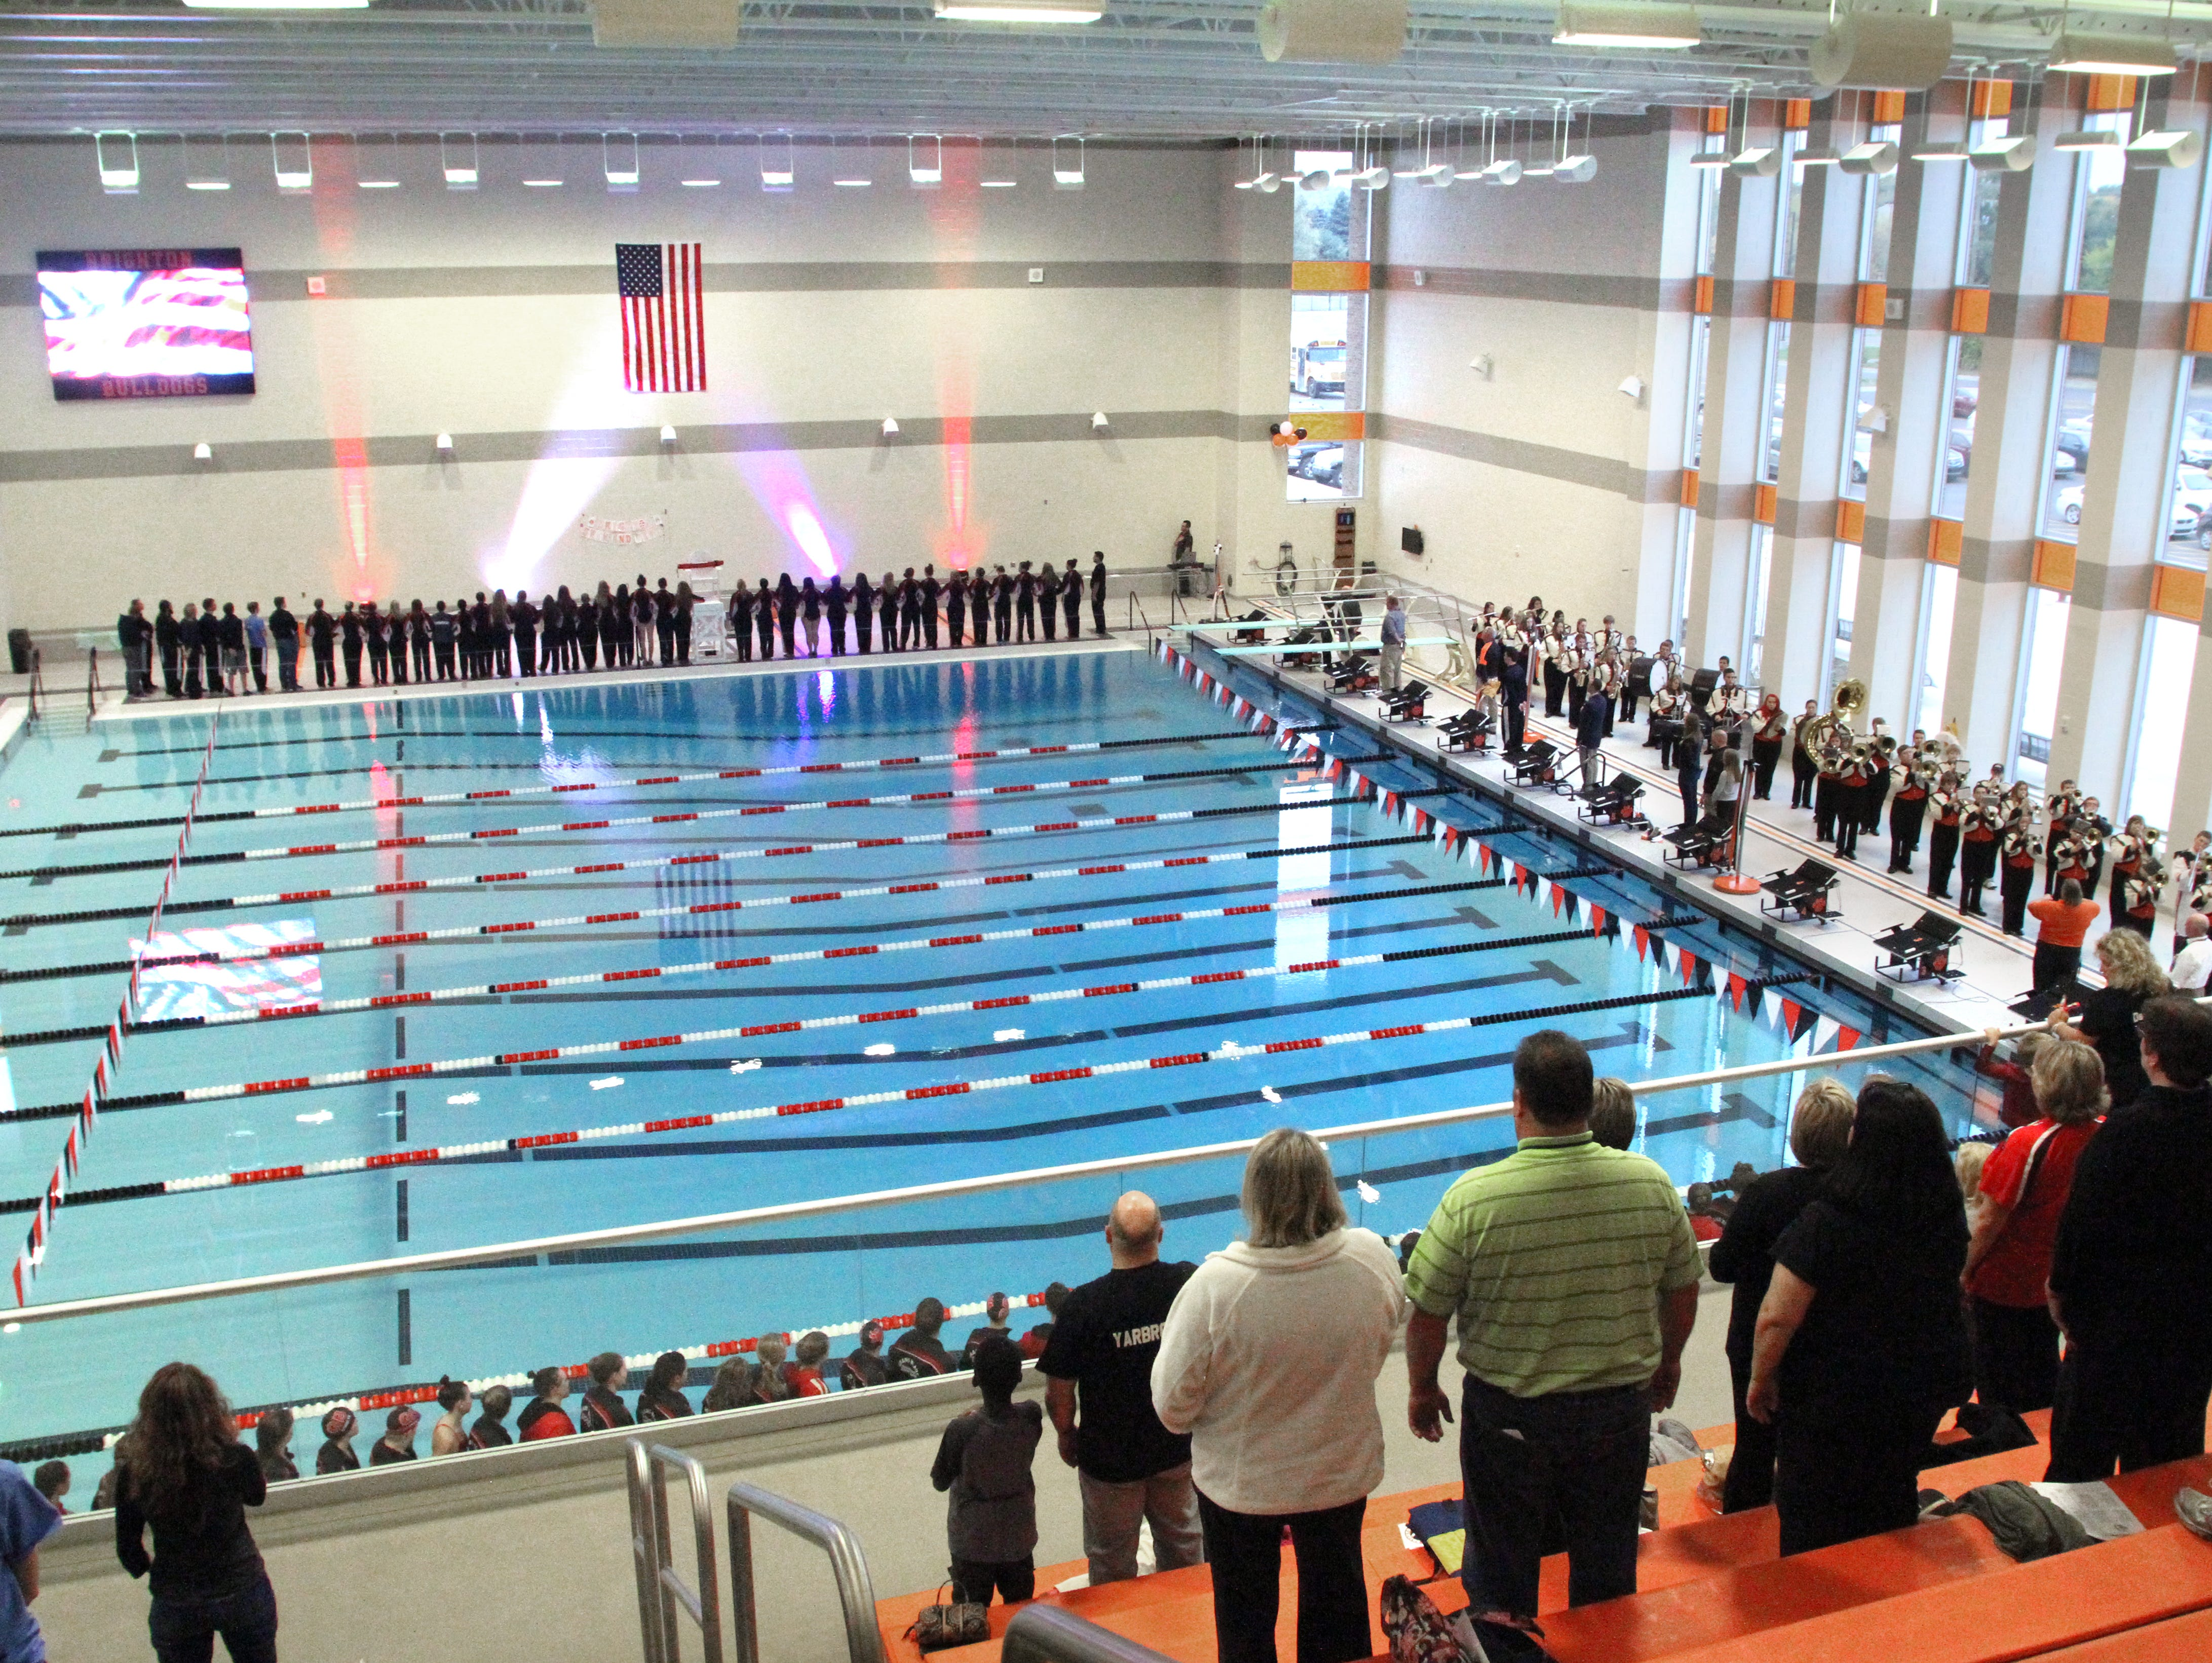 Spectators stand as the national anthem is played by members of the Brighton High School marching band at the opening of the new pool at Brighton High School on Tuesday.